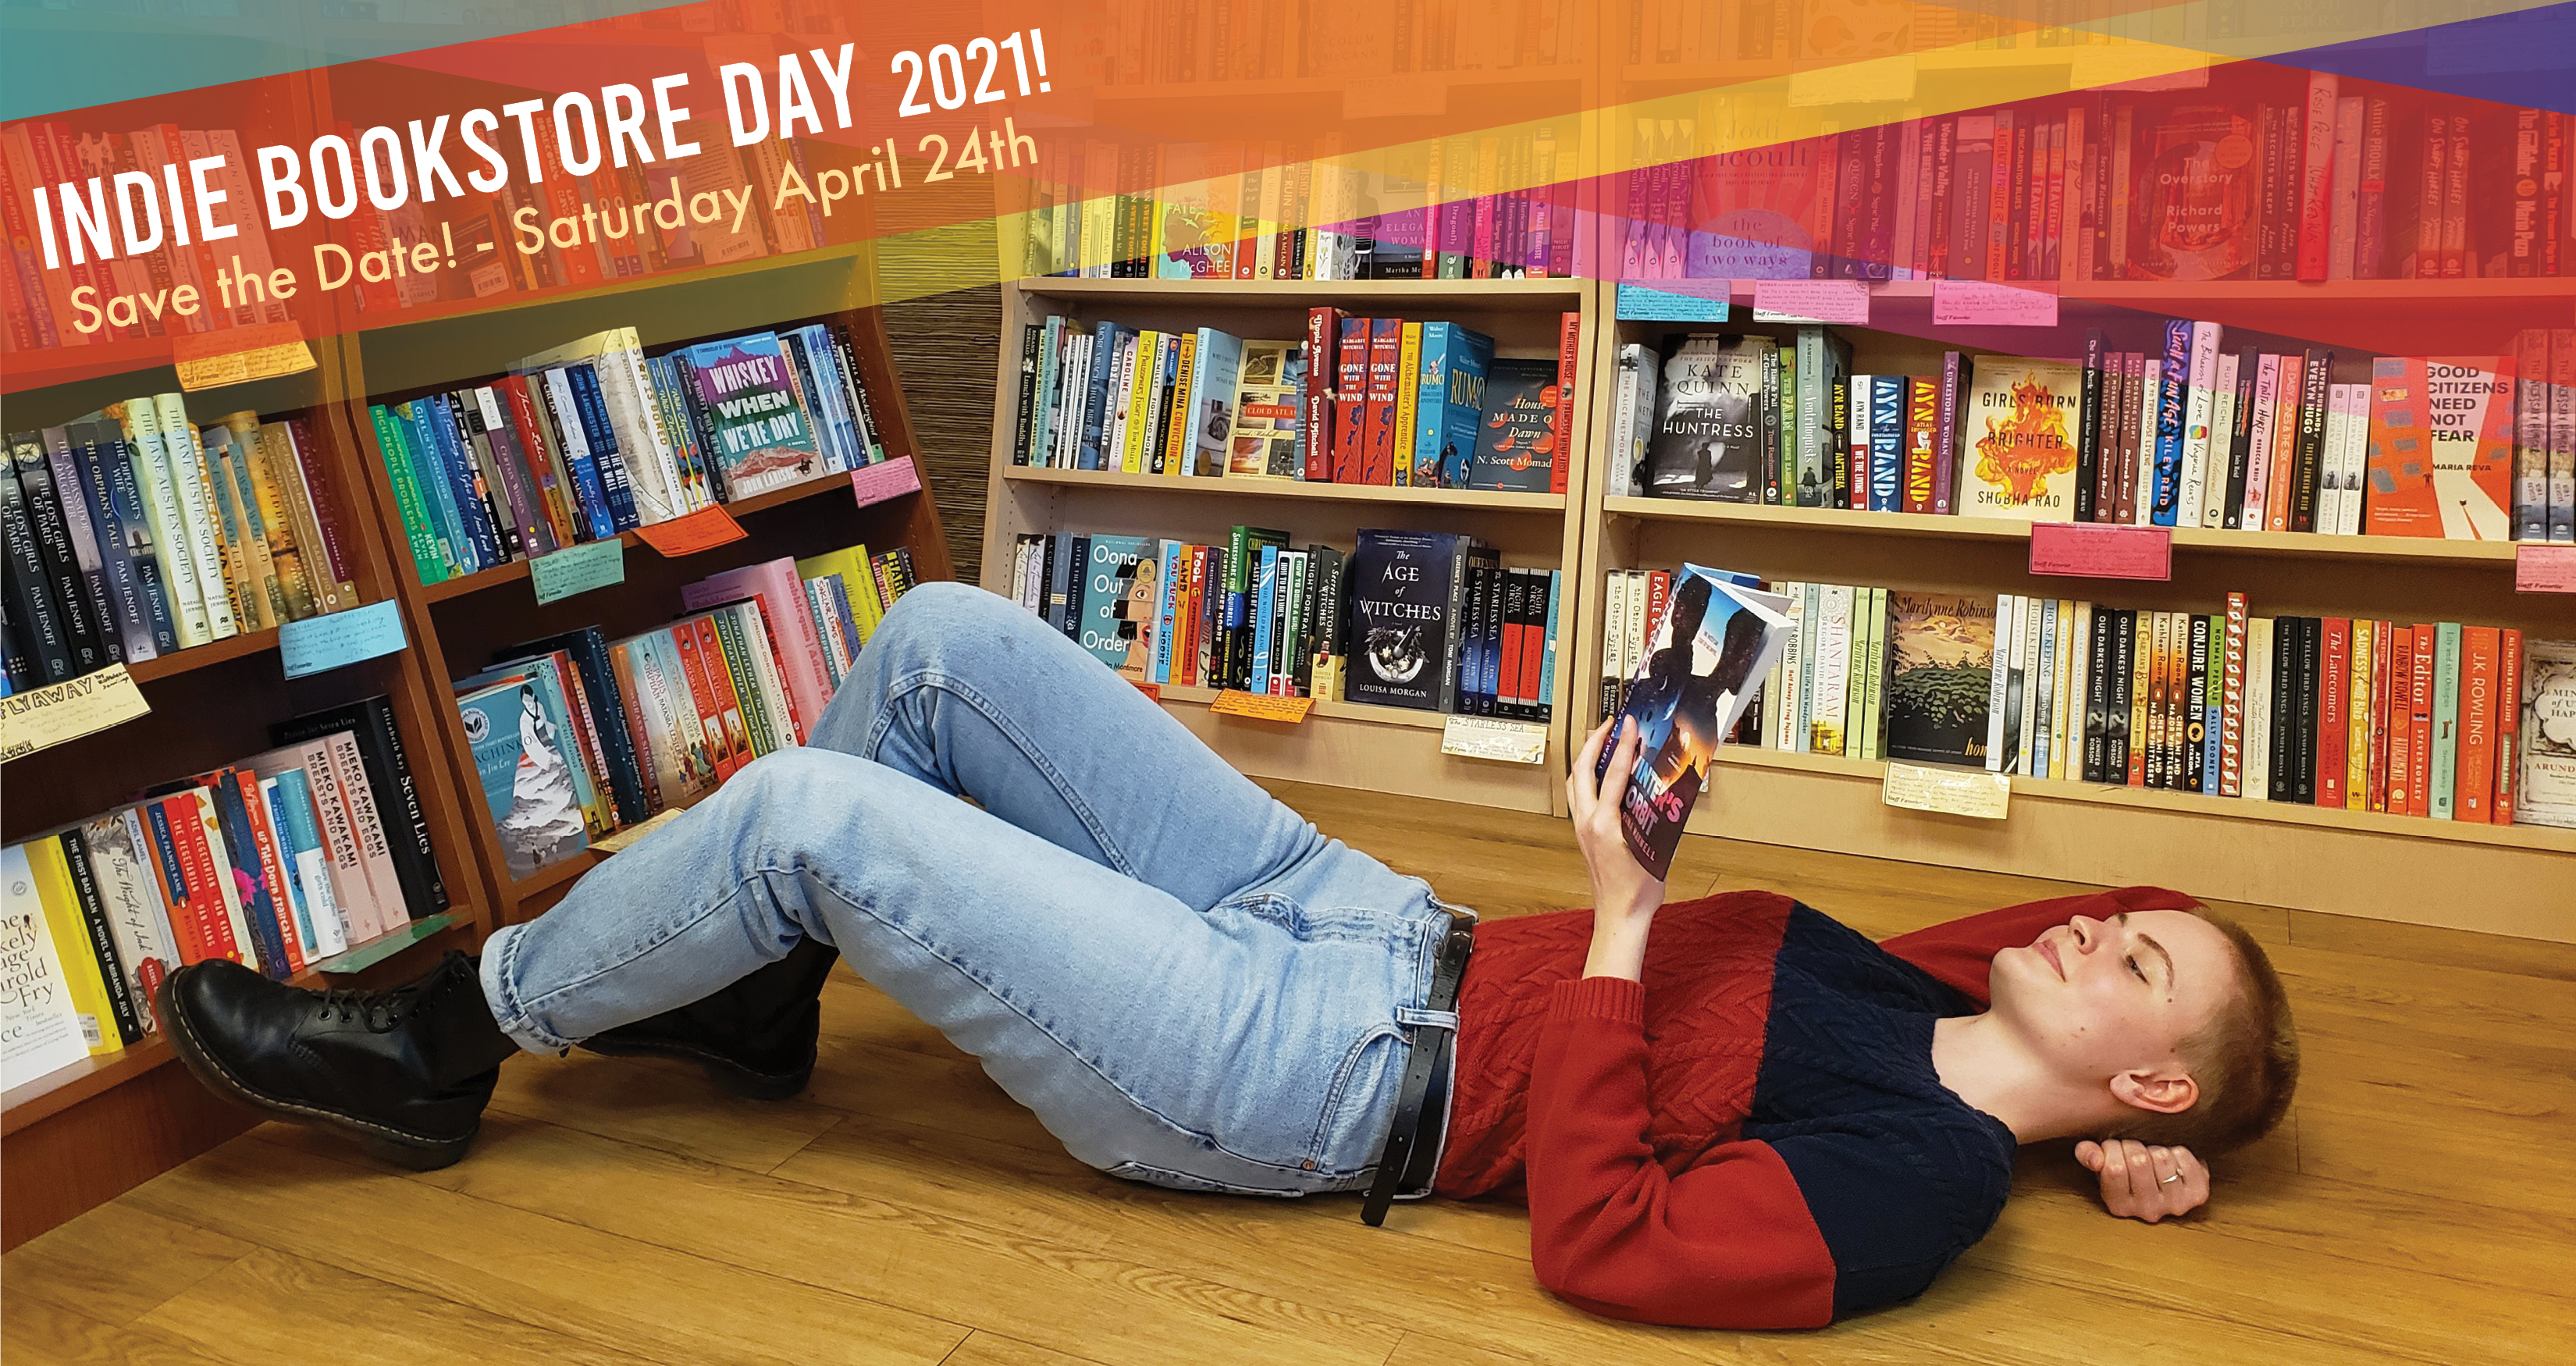 Indie Bookstore Day